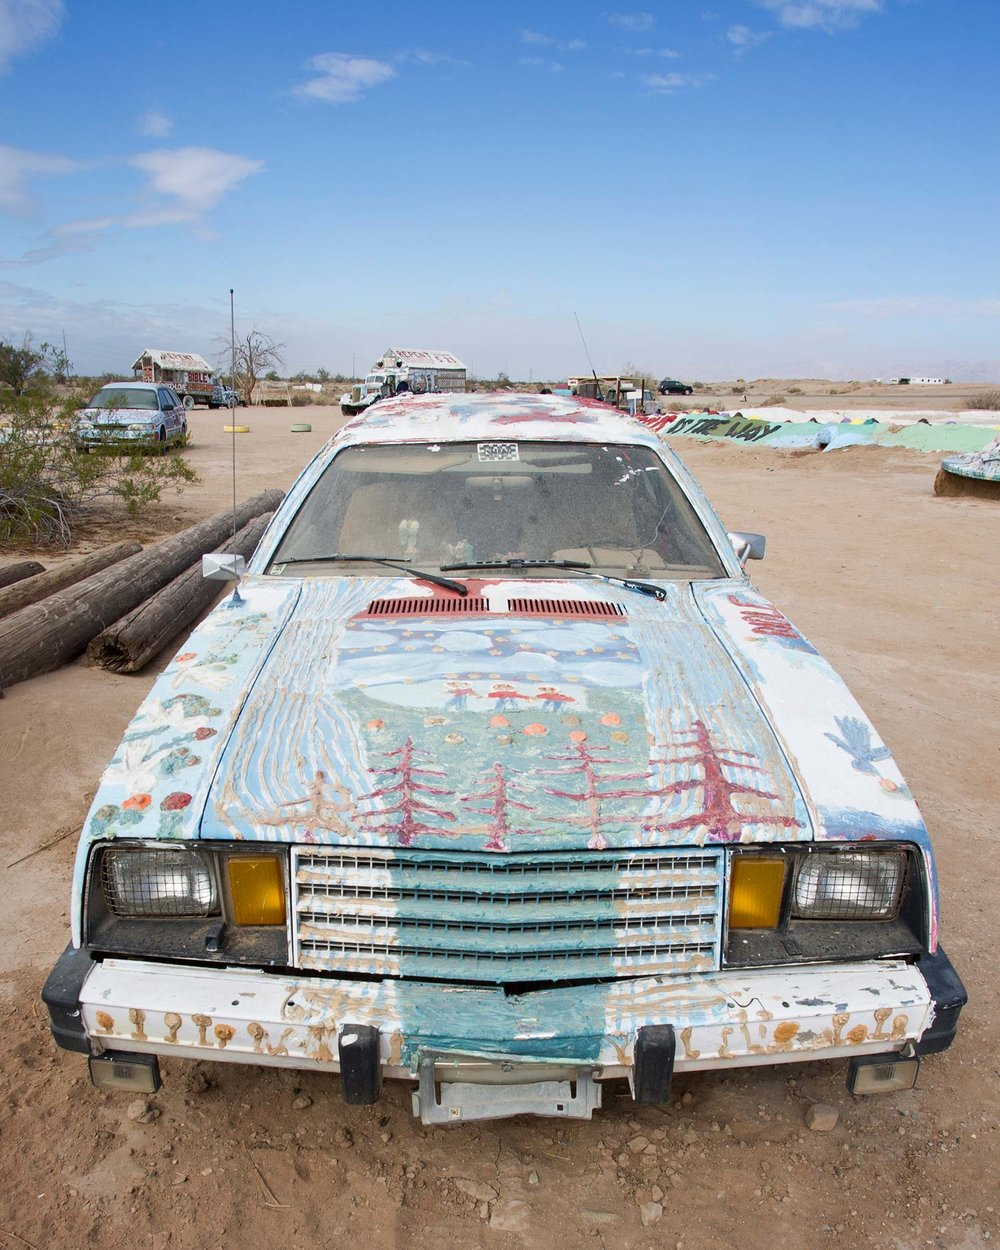 085_SaltonSea_SalvationMountain.jpg